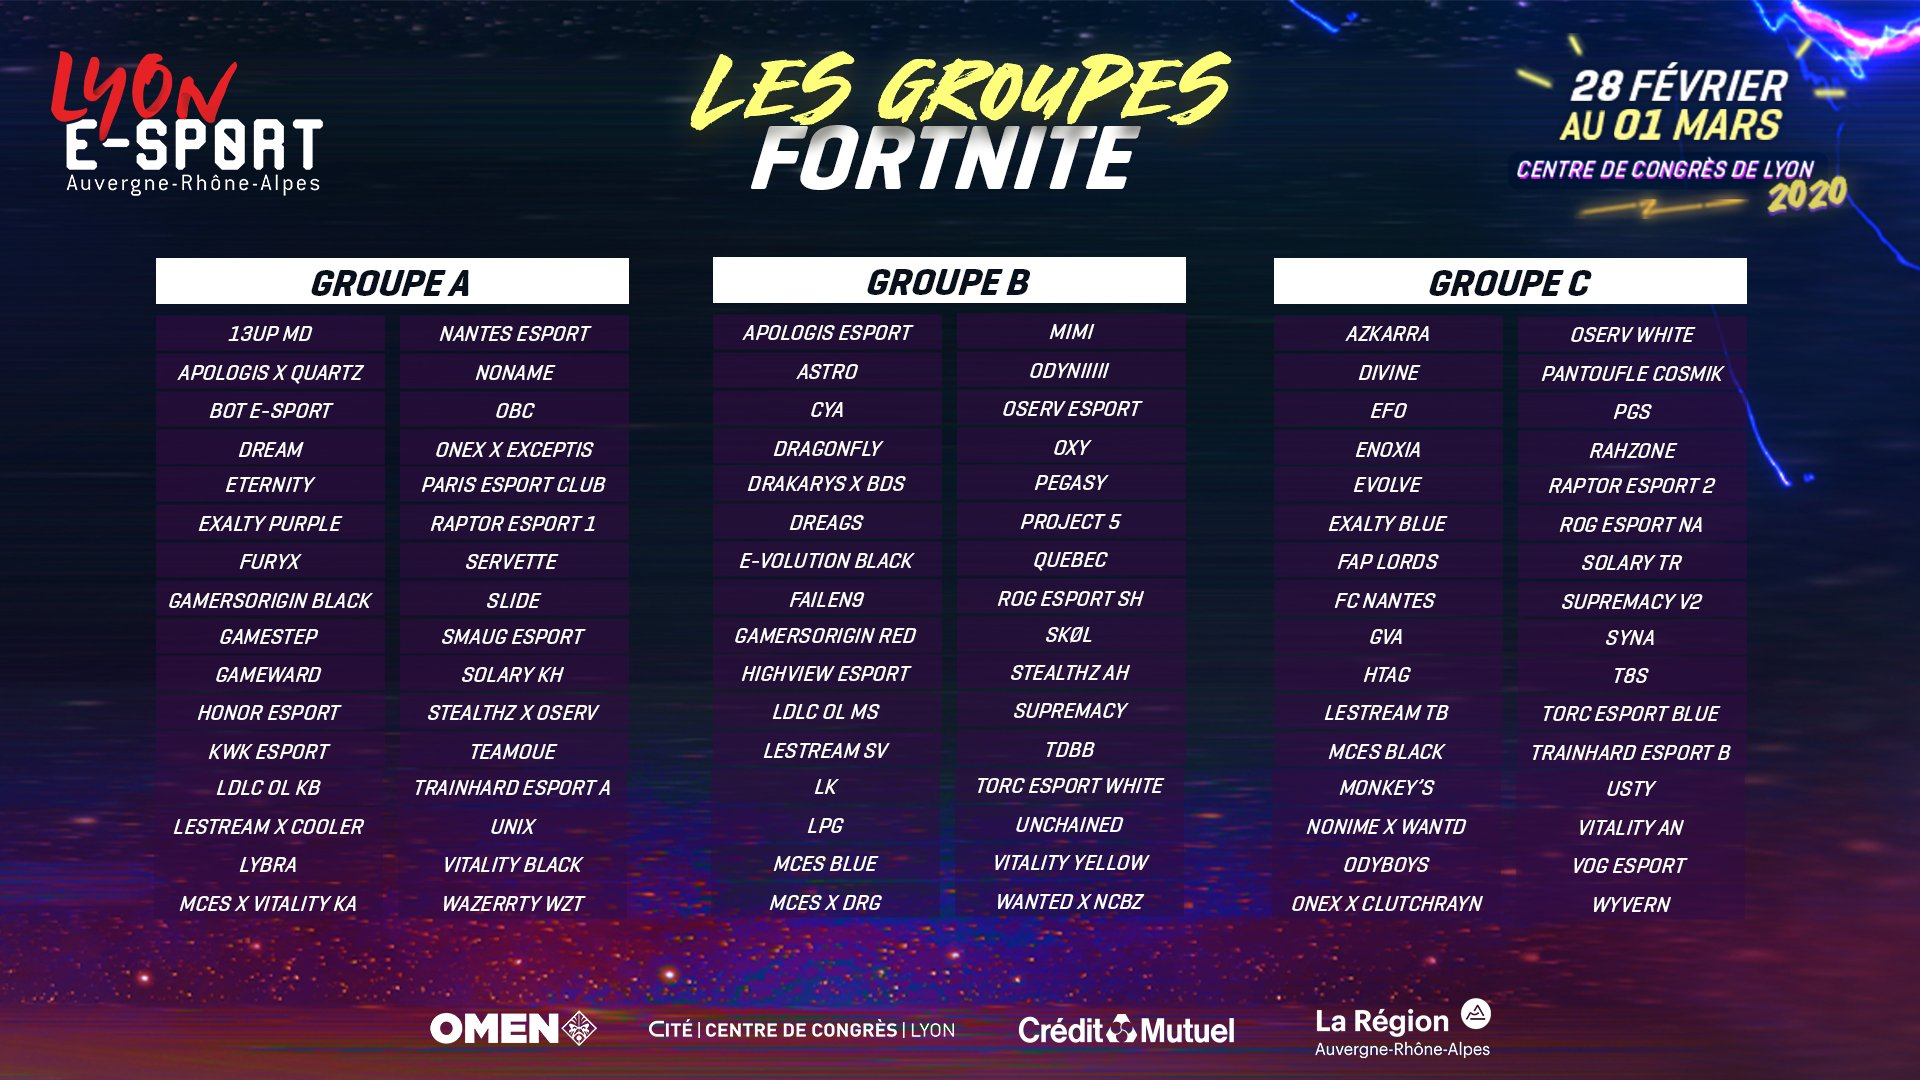 tournoi fortnite de la lyon e-sport 2020